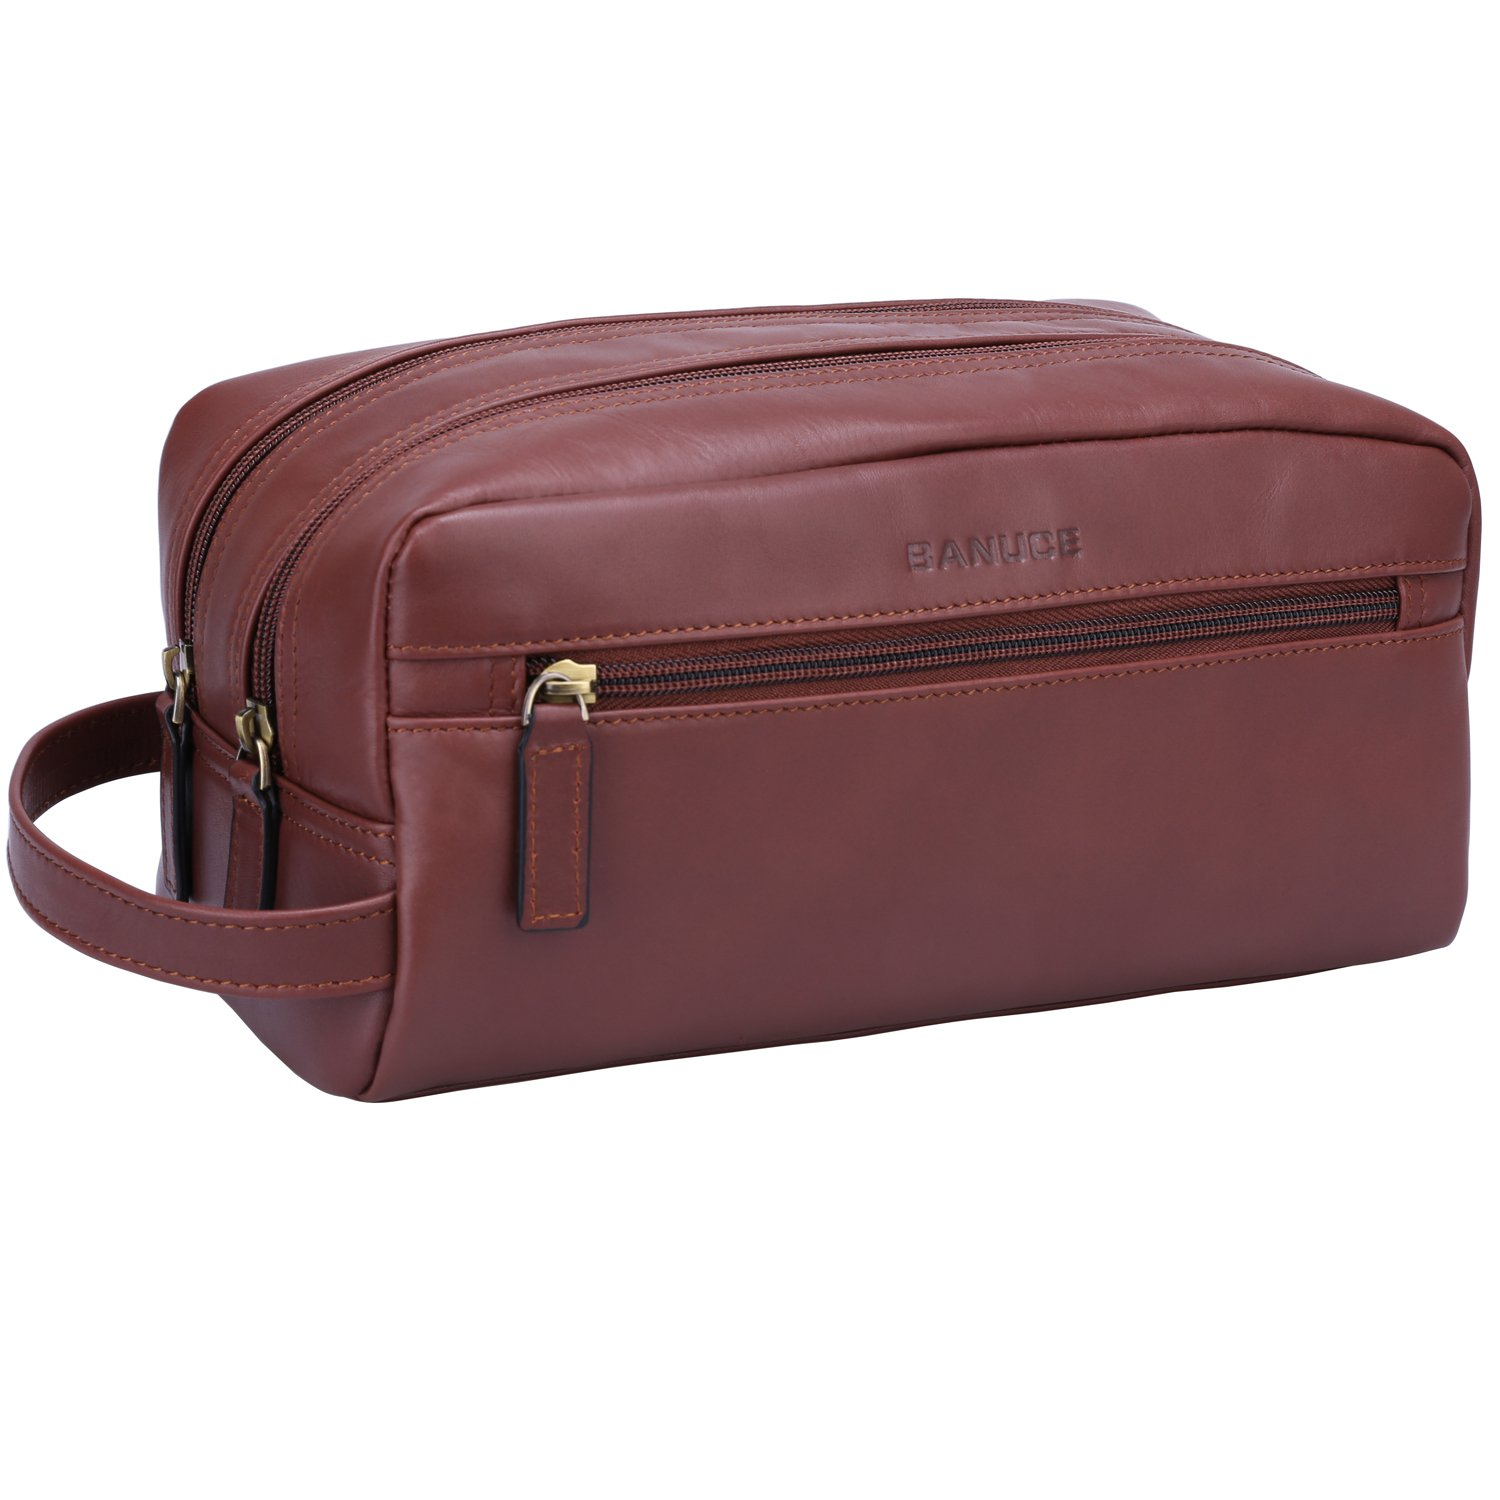 Banuce Vintage Full Grain Italian Leather Toiletry Bag for Men Women Hanging Travel Organizer Kit